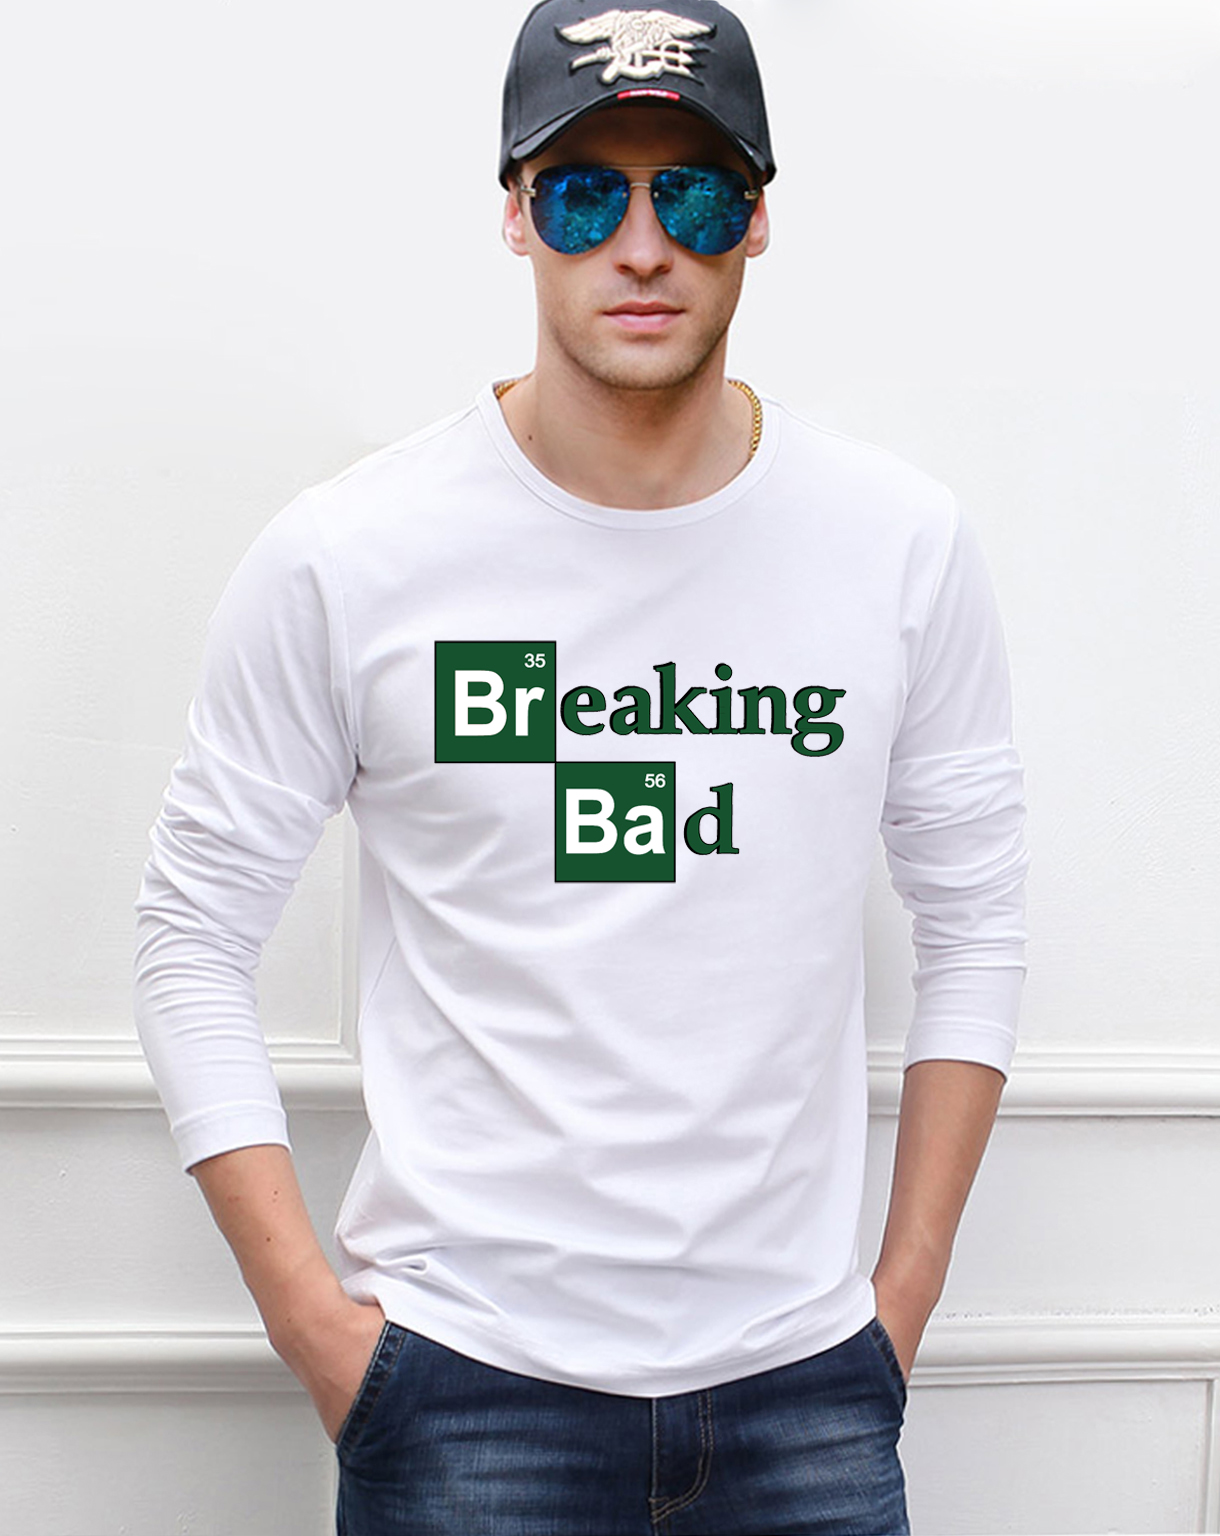 Hot Sale Breaking Bad men's long sleeve T-shirts 2019 new spring 100% cotton high quality fashion hip hop fitness men top tees